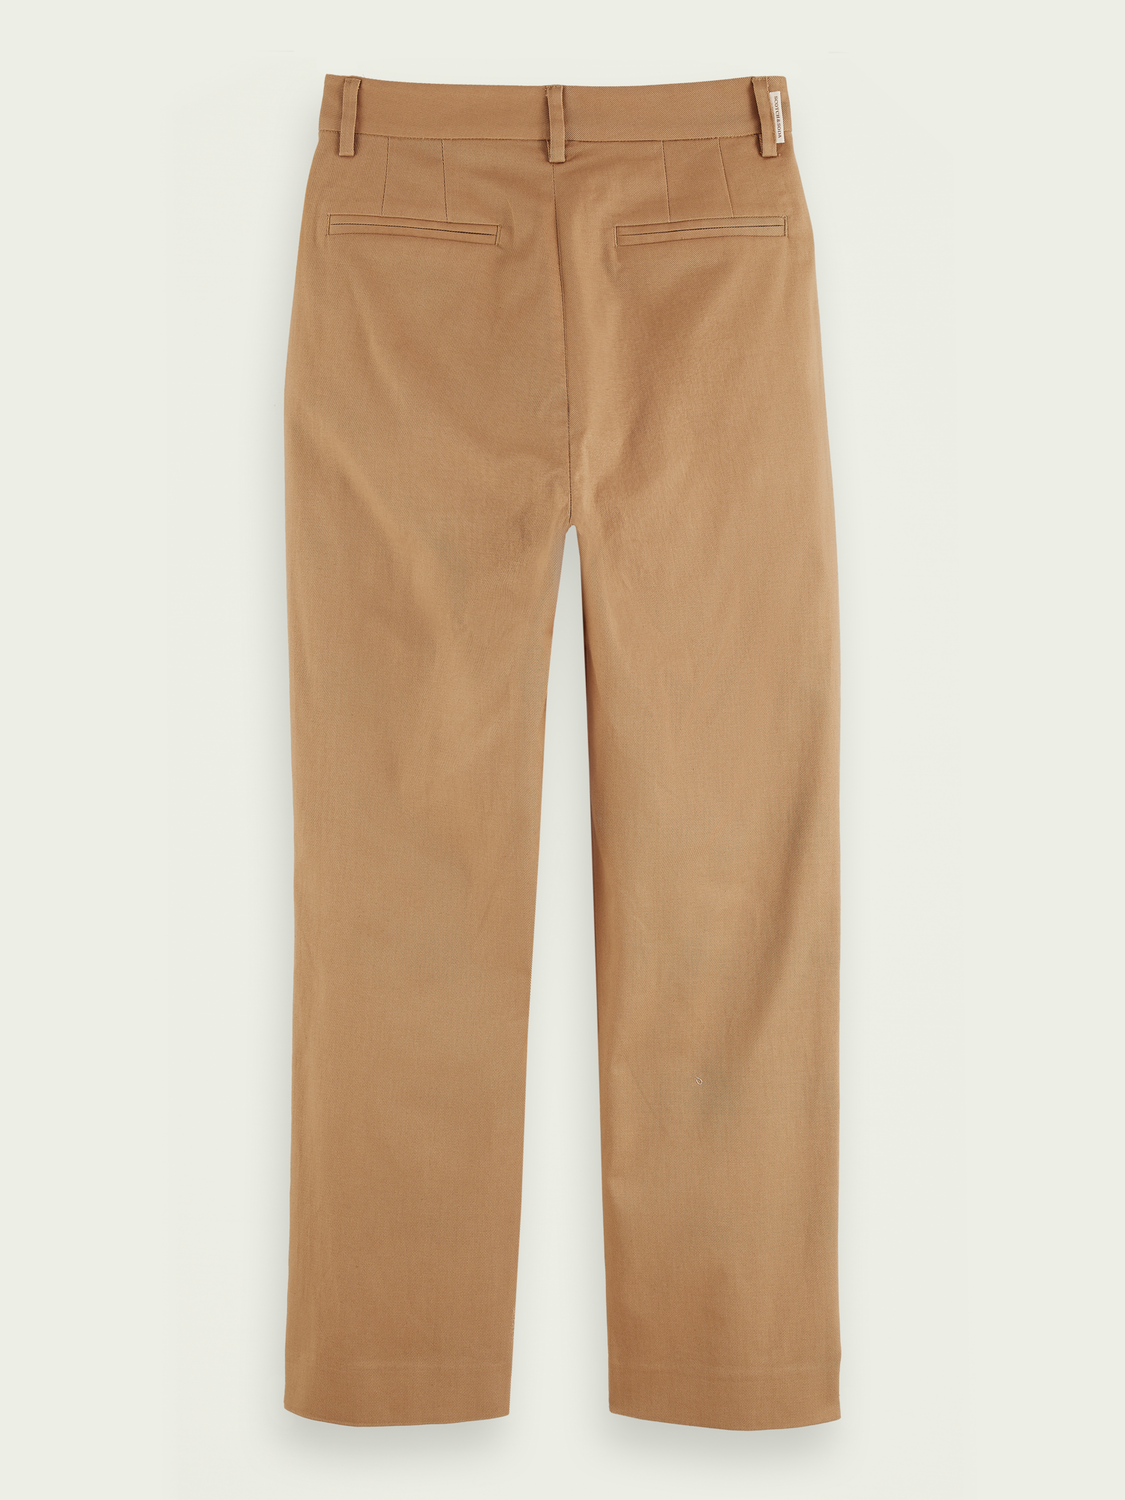 Damer Abott – Stretch twill | Regular fit stretch chino